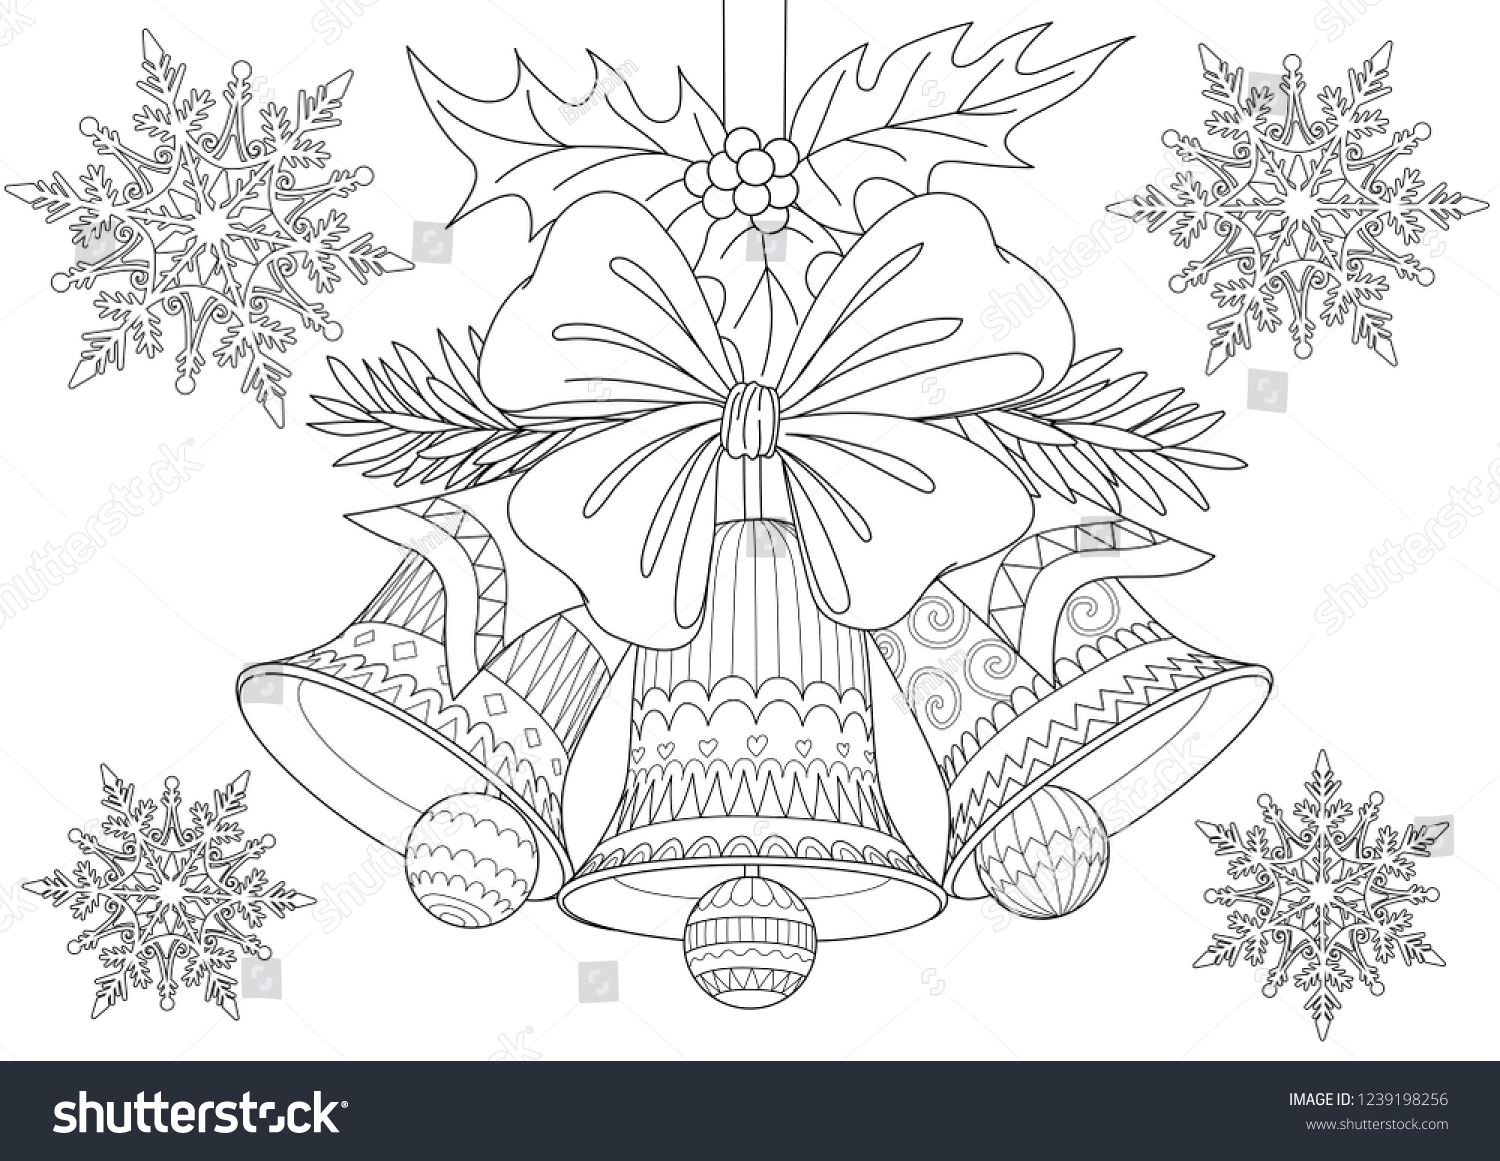 Beautiful Christmas Bells Bow And Leaves With Falling Snowflakes For Cards Illustration And Coloring Bo Christmas Bells Drawing Coloring Books Christmas Bells